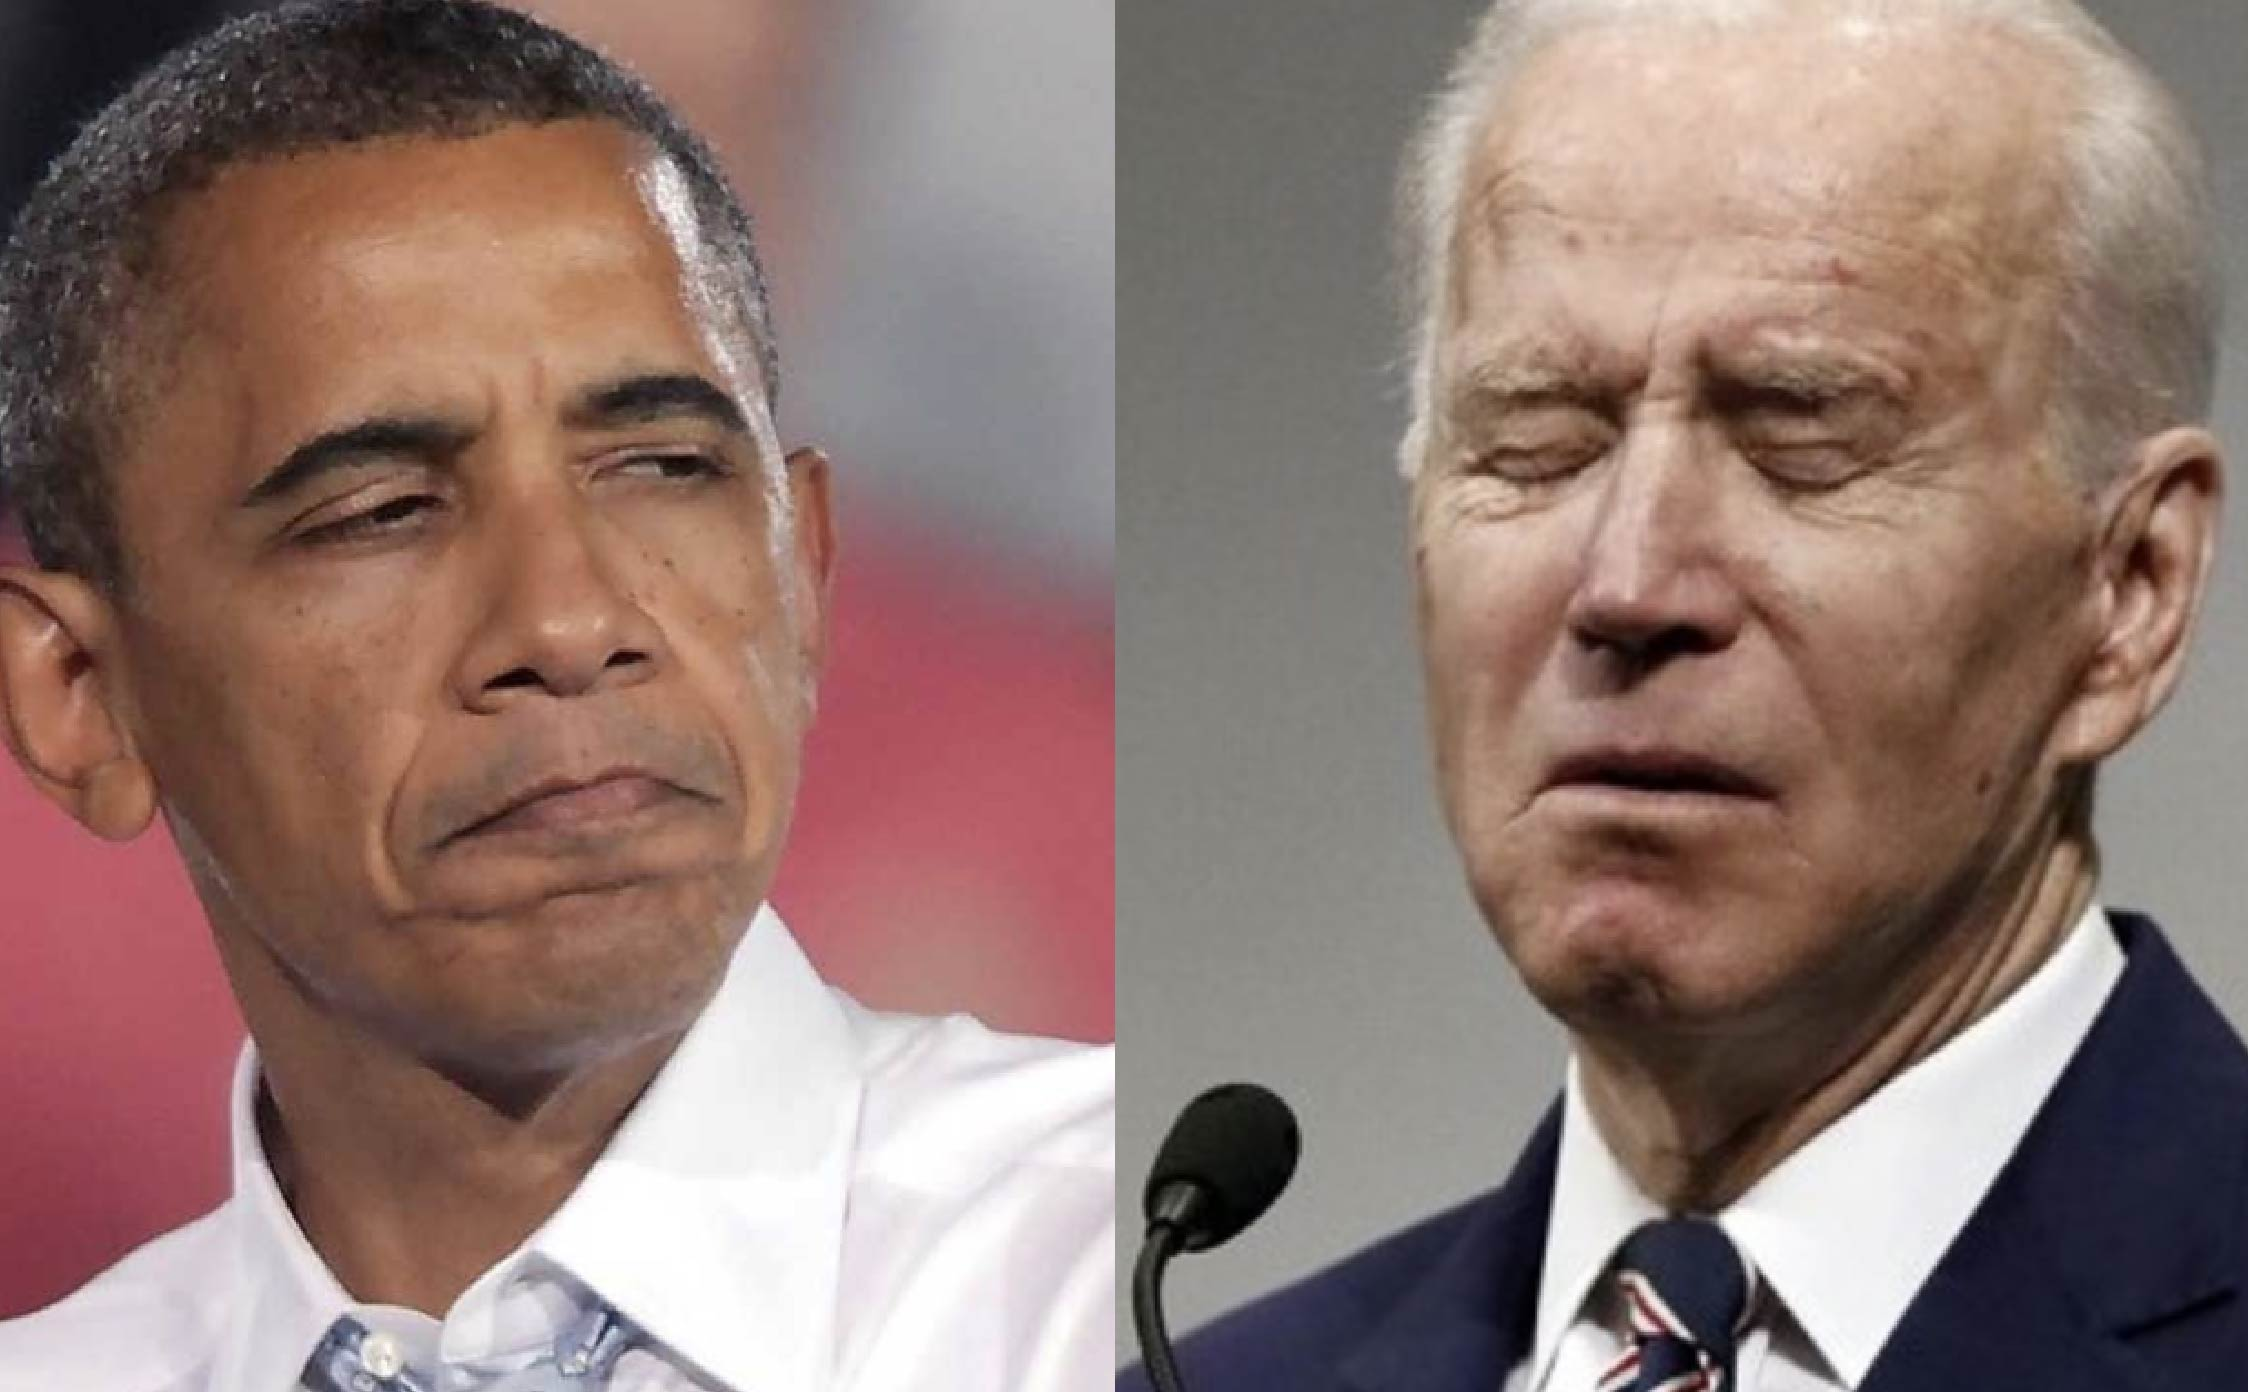 """Now We Know The """"Real Reason"""" Obama Refused to Endorse Joe...And This One's Gotta Sting"""